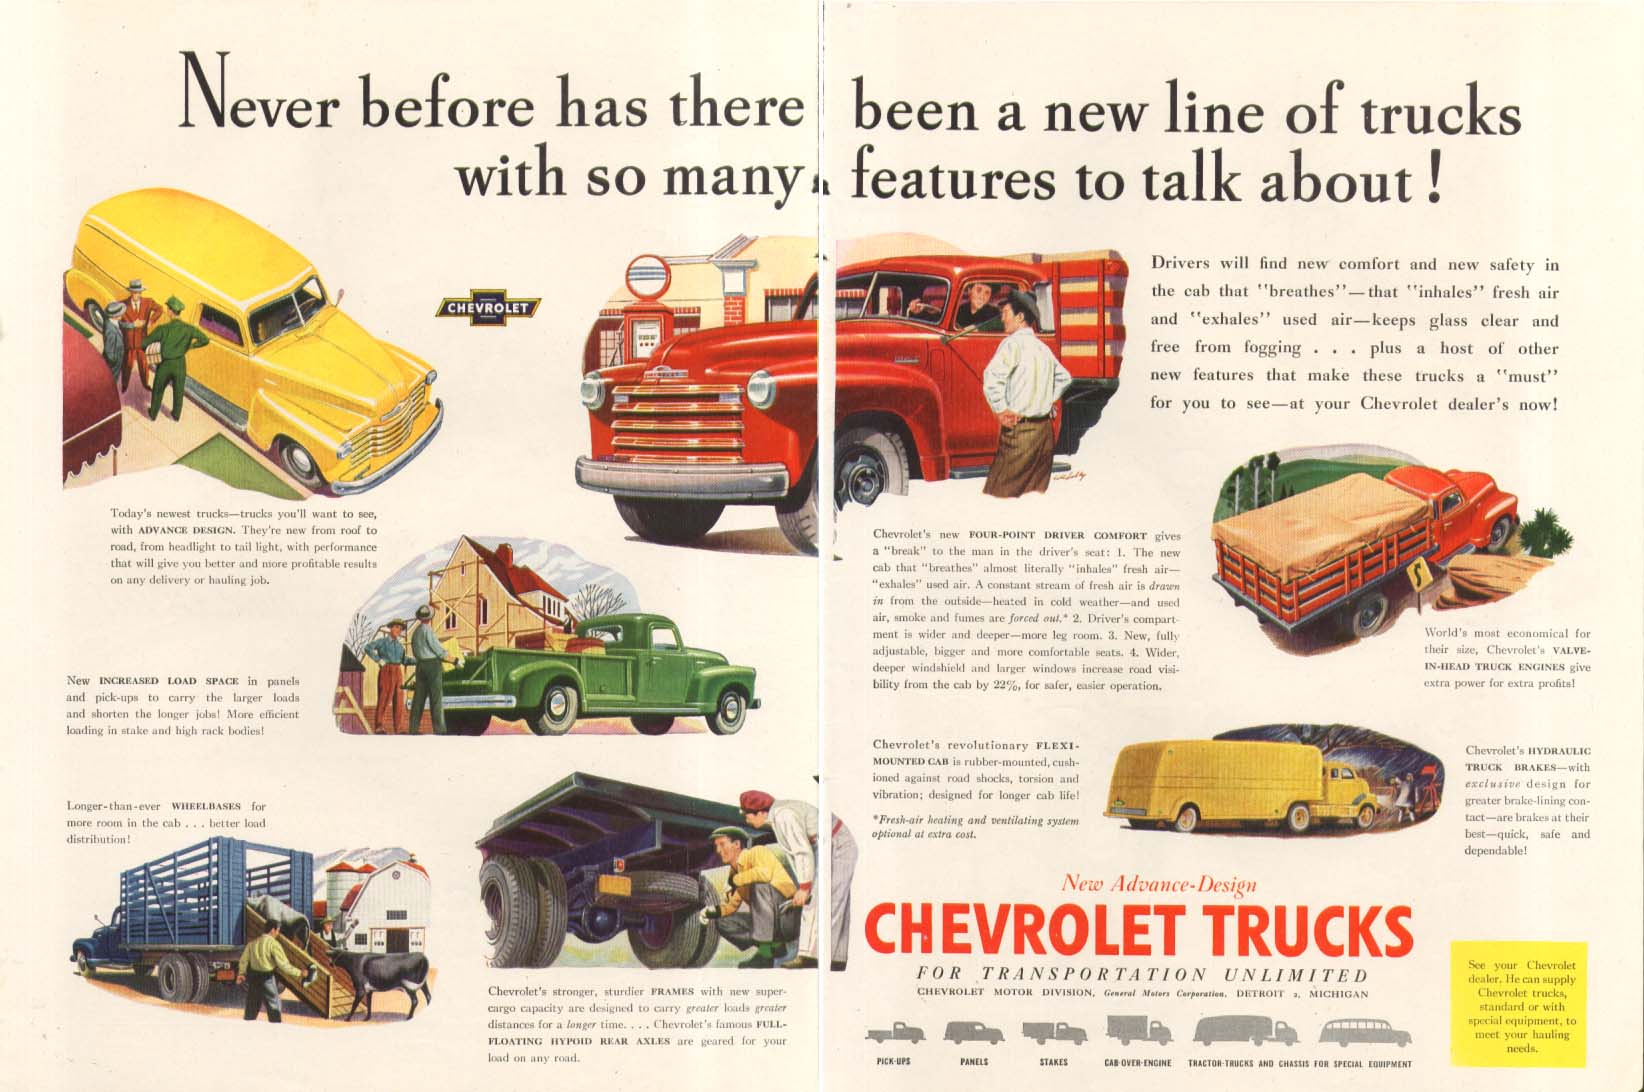 Never before a line with so many features Chevrolet Pick-Up Van + Truck ad 1947